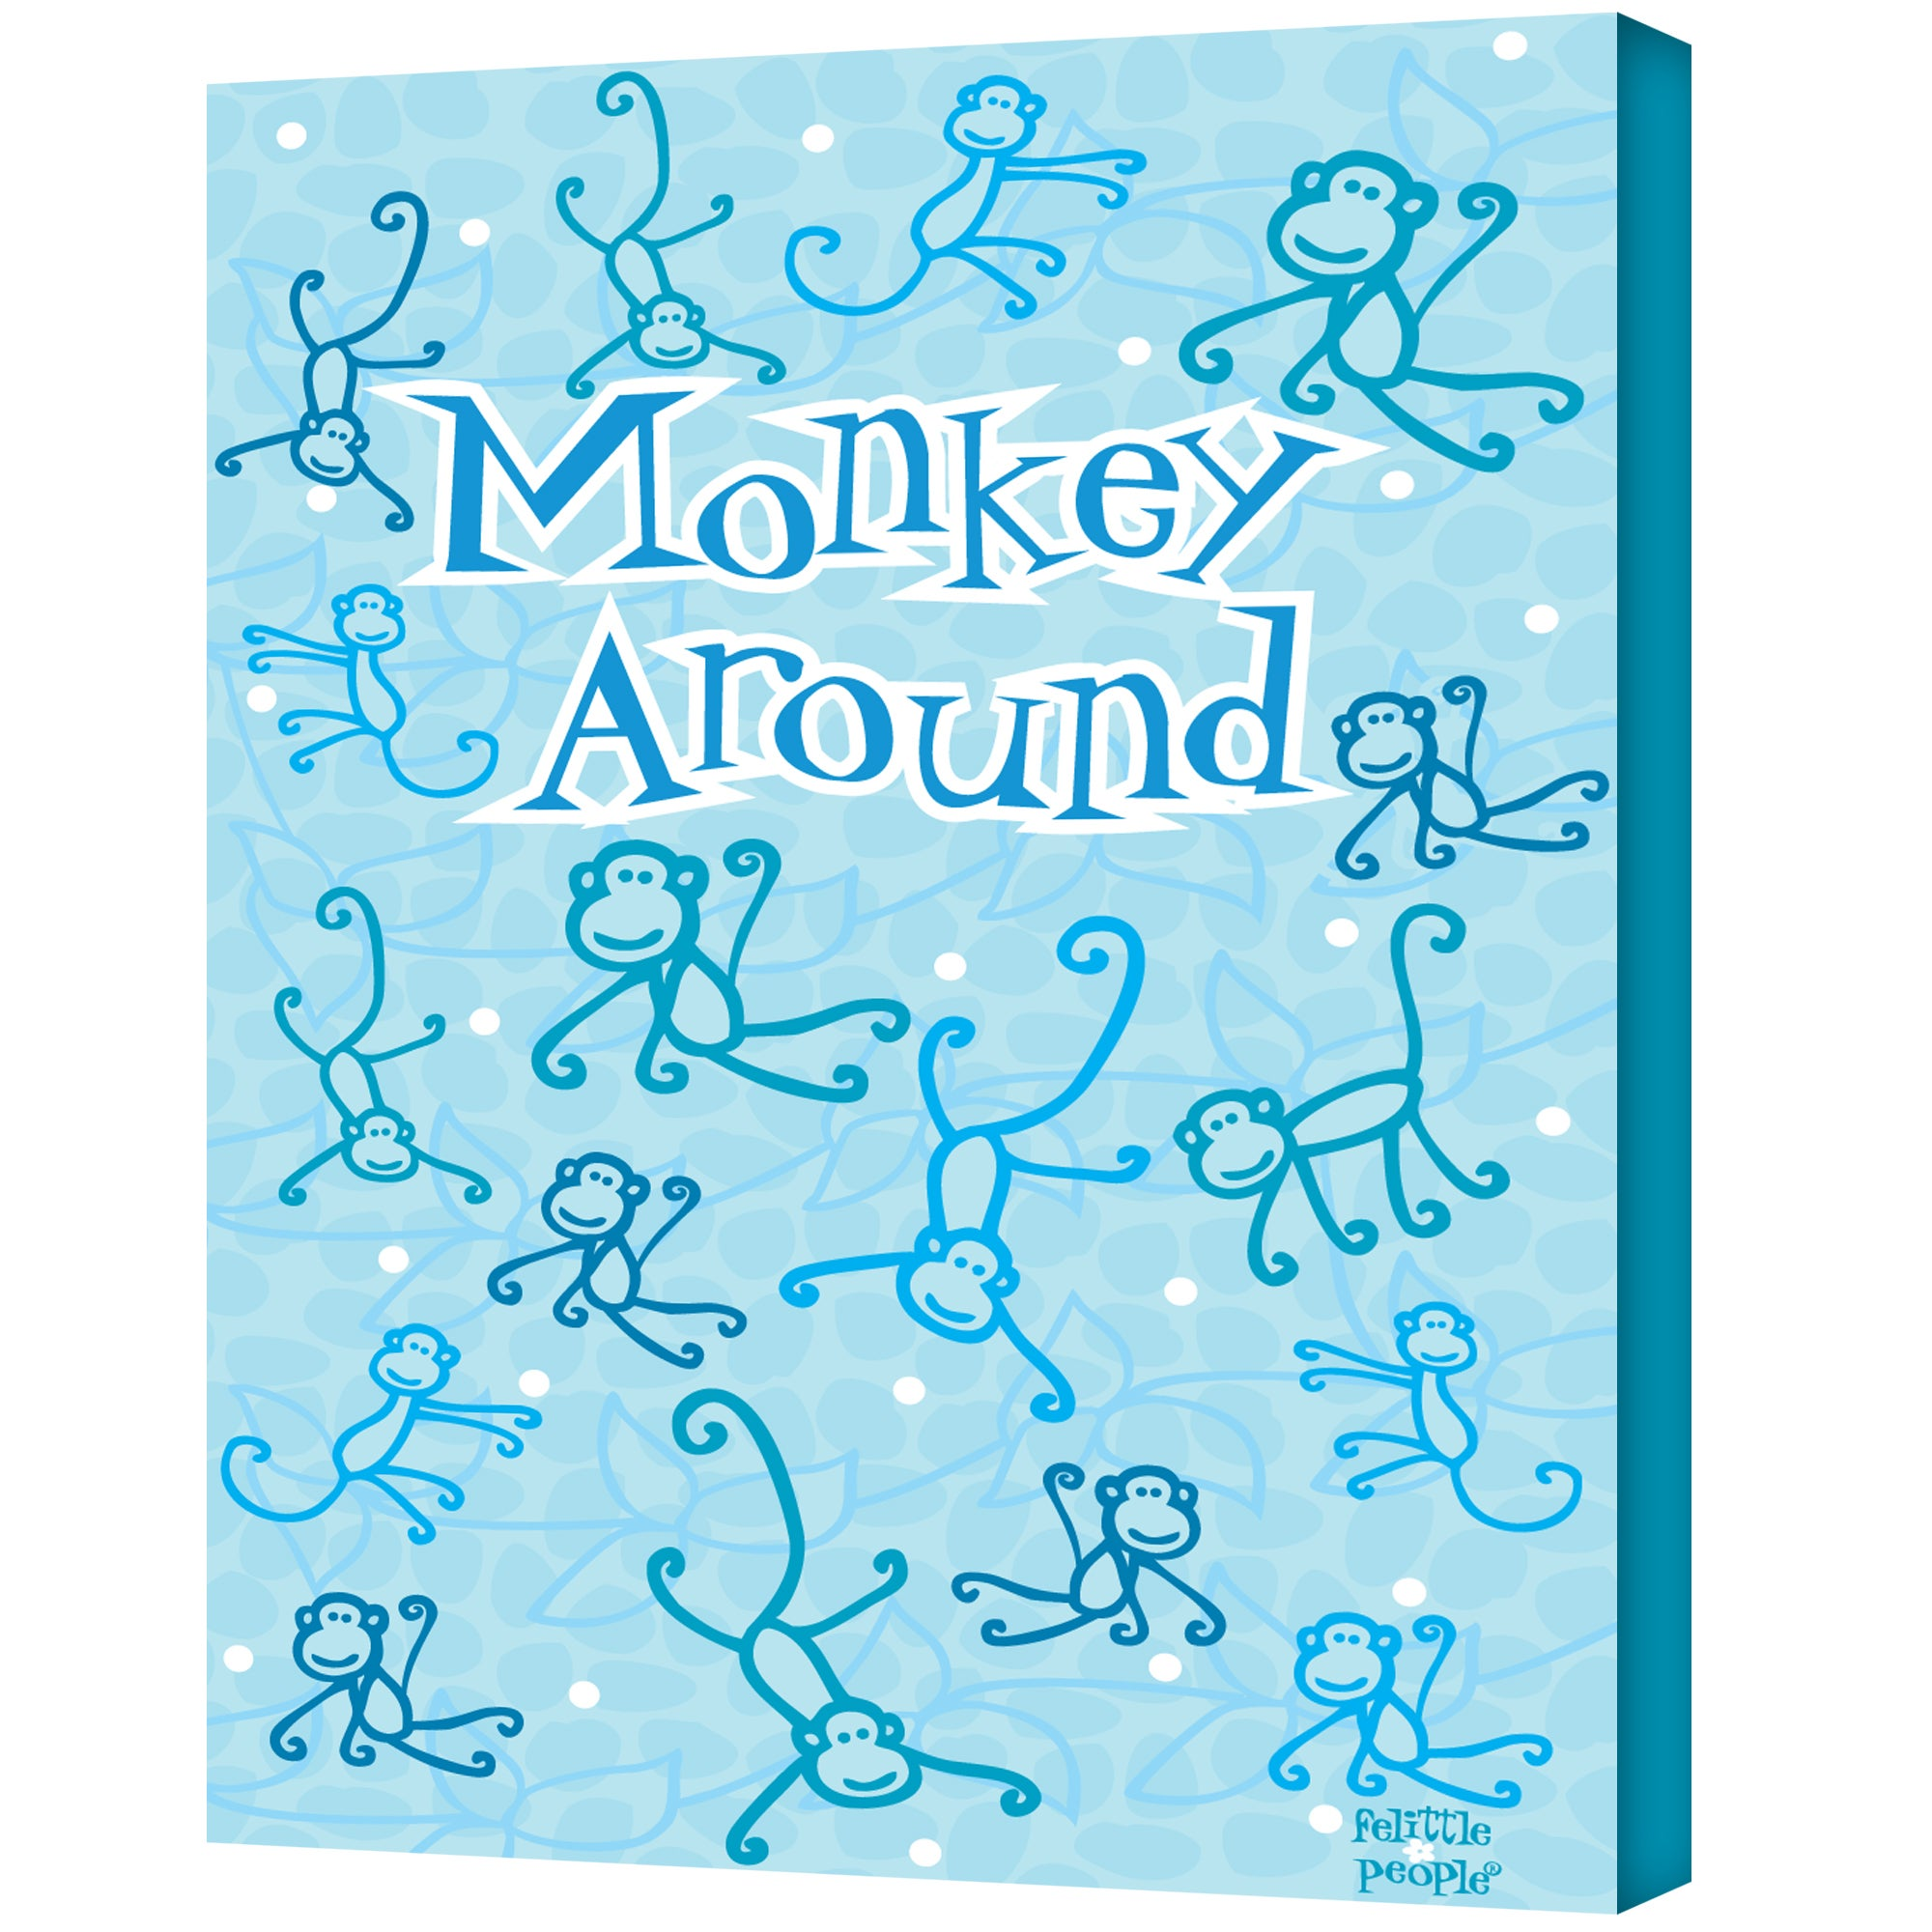 Felittle People 'Monkey Around' Gallery-wrapped Canvas Art